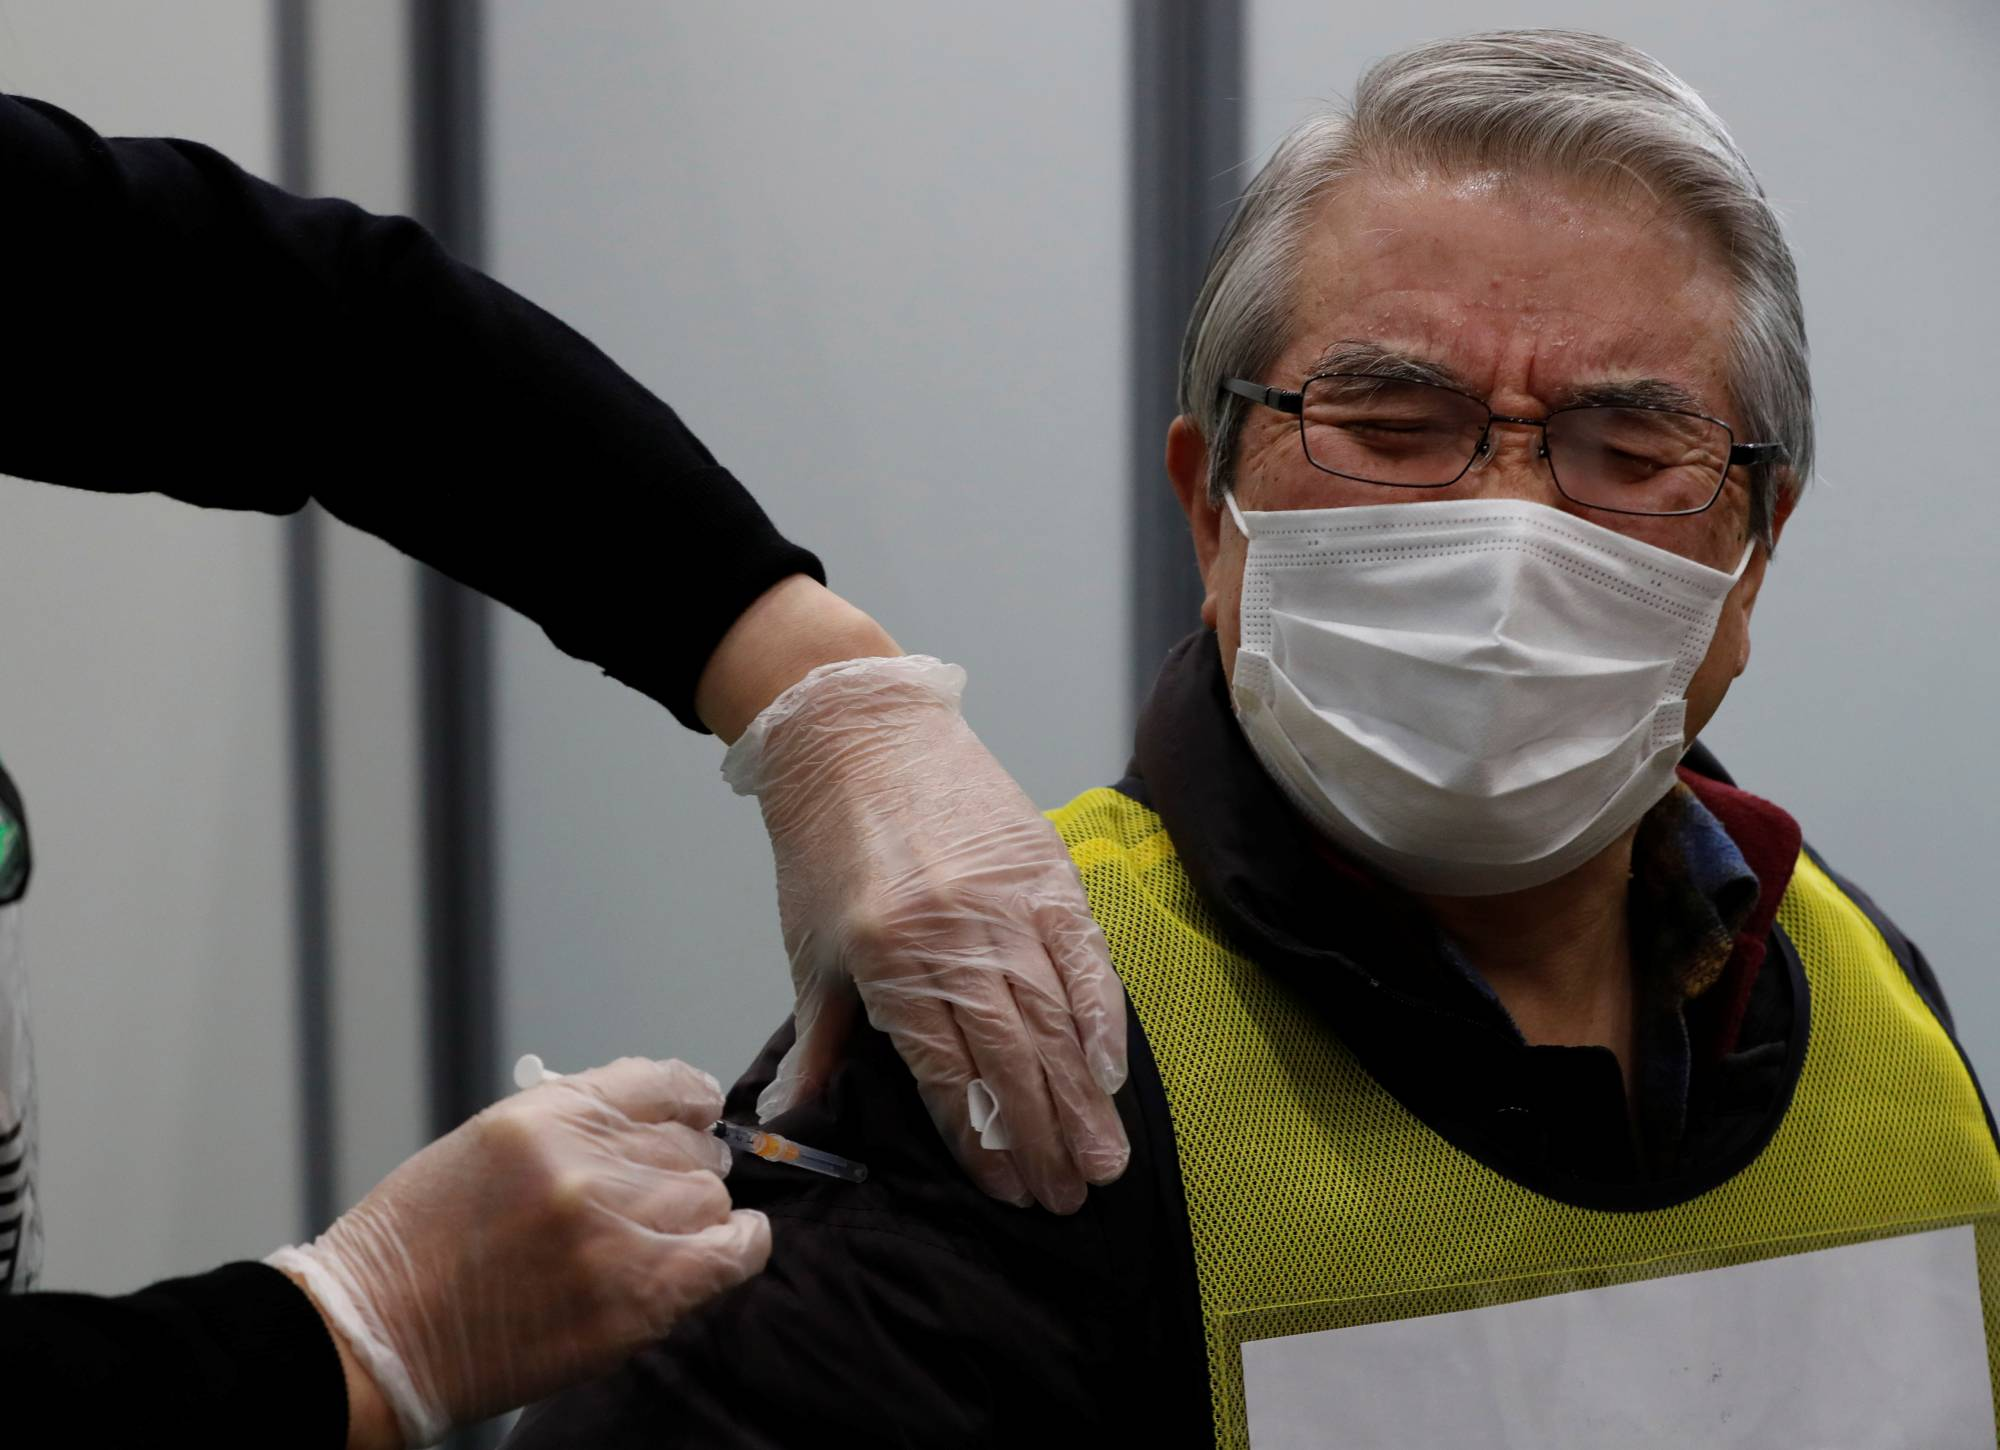 While some other countries' COVID-19 vaccination programs are well underway, Japan has so far only seen a handful of its population receive a dummy dose in a mock inoculation event. | REUTERS